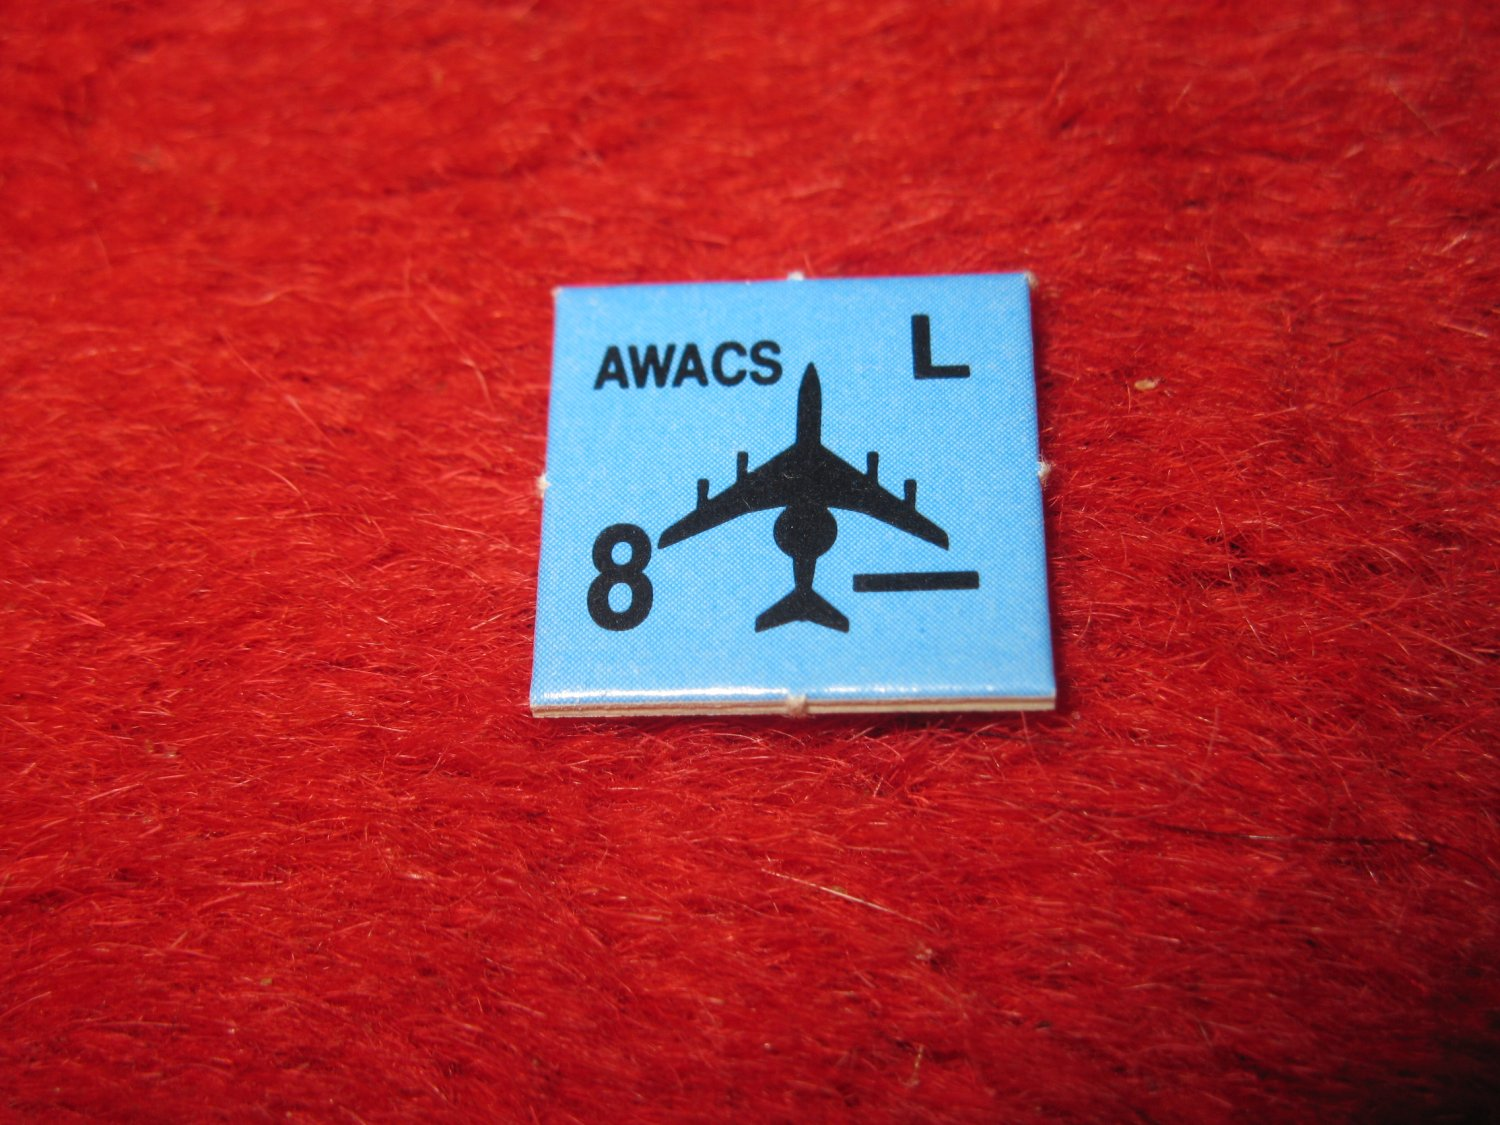 1988 The Hunt for Red October Board Game Piece: AWACS blue Square Counter